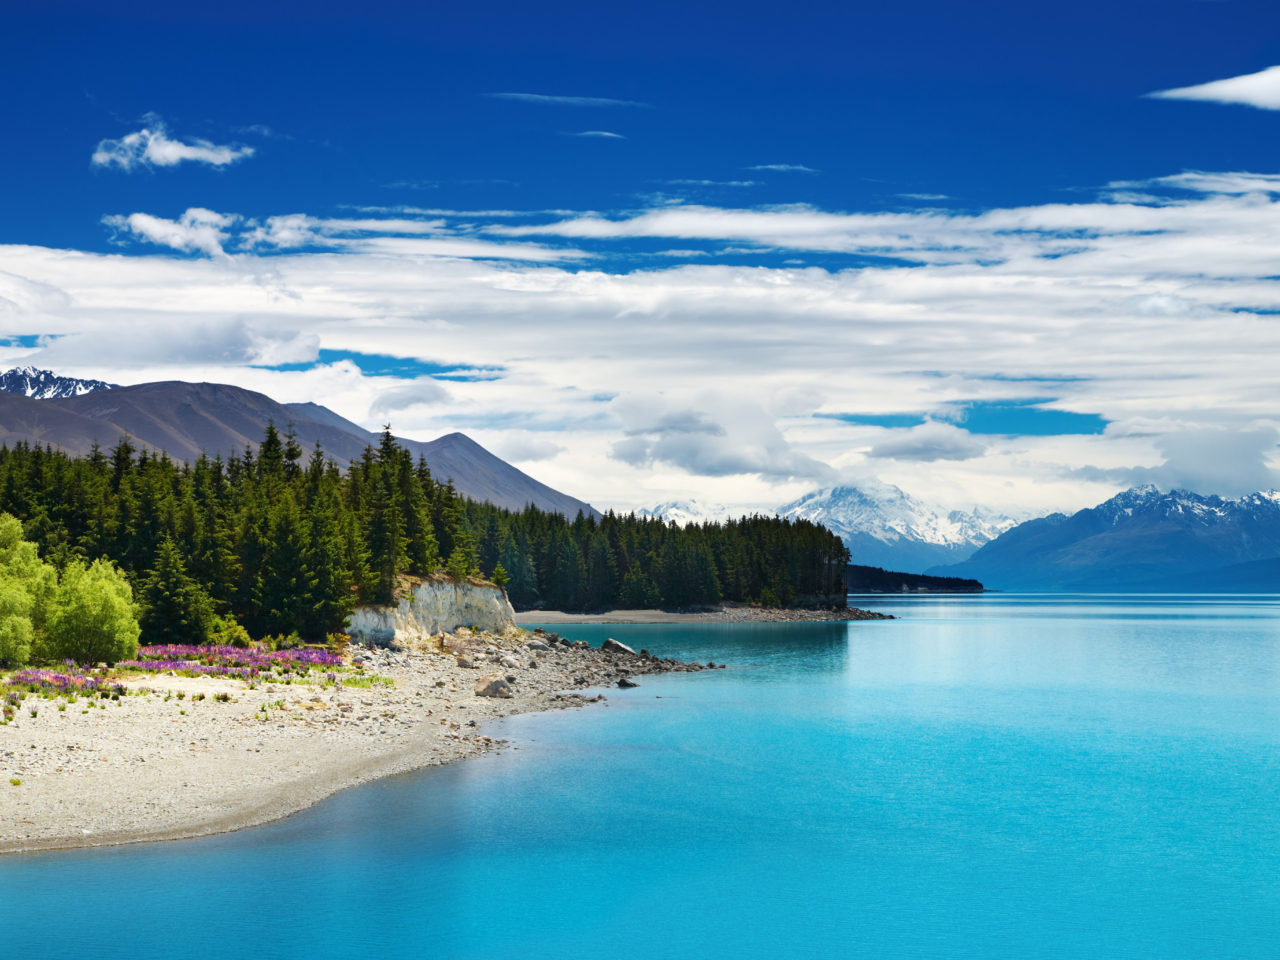 Fall Wallpaper Lake Mount Cook And Lake Pukaki New Zealand Beautiful Hd